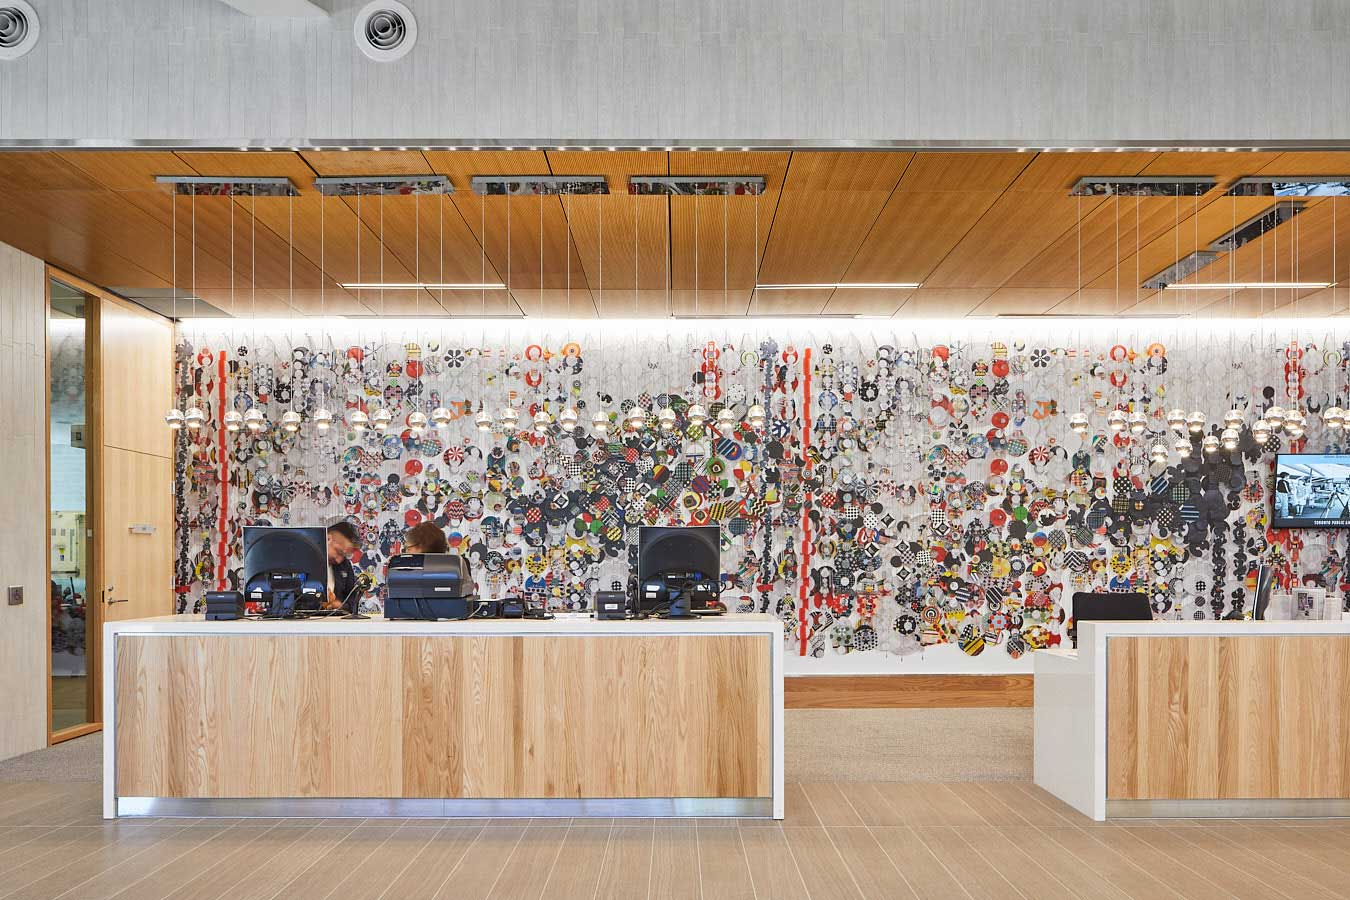 Toronto's Albion Library turns the page on dated institutional design